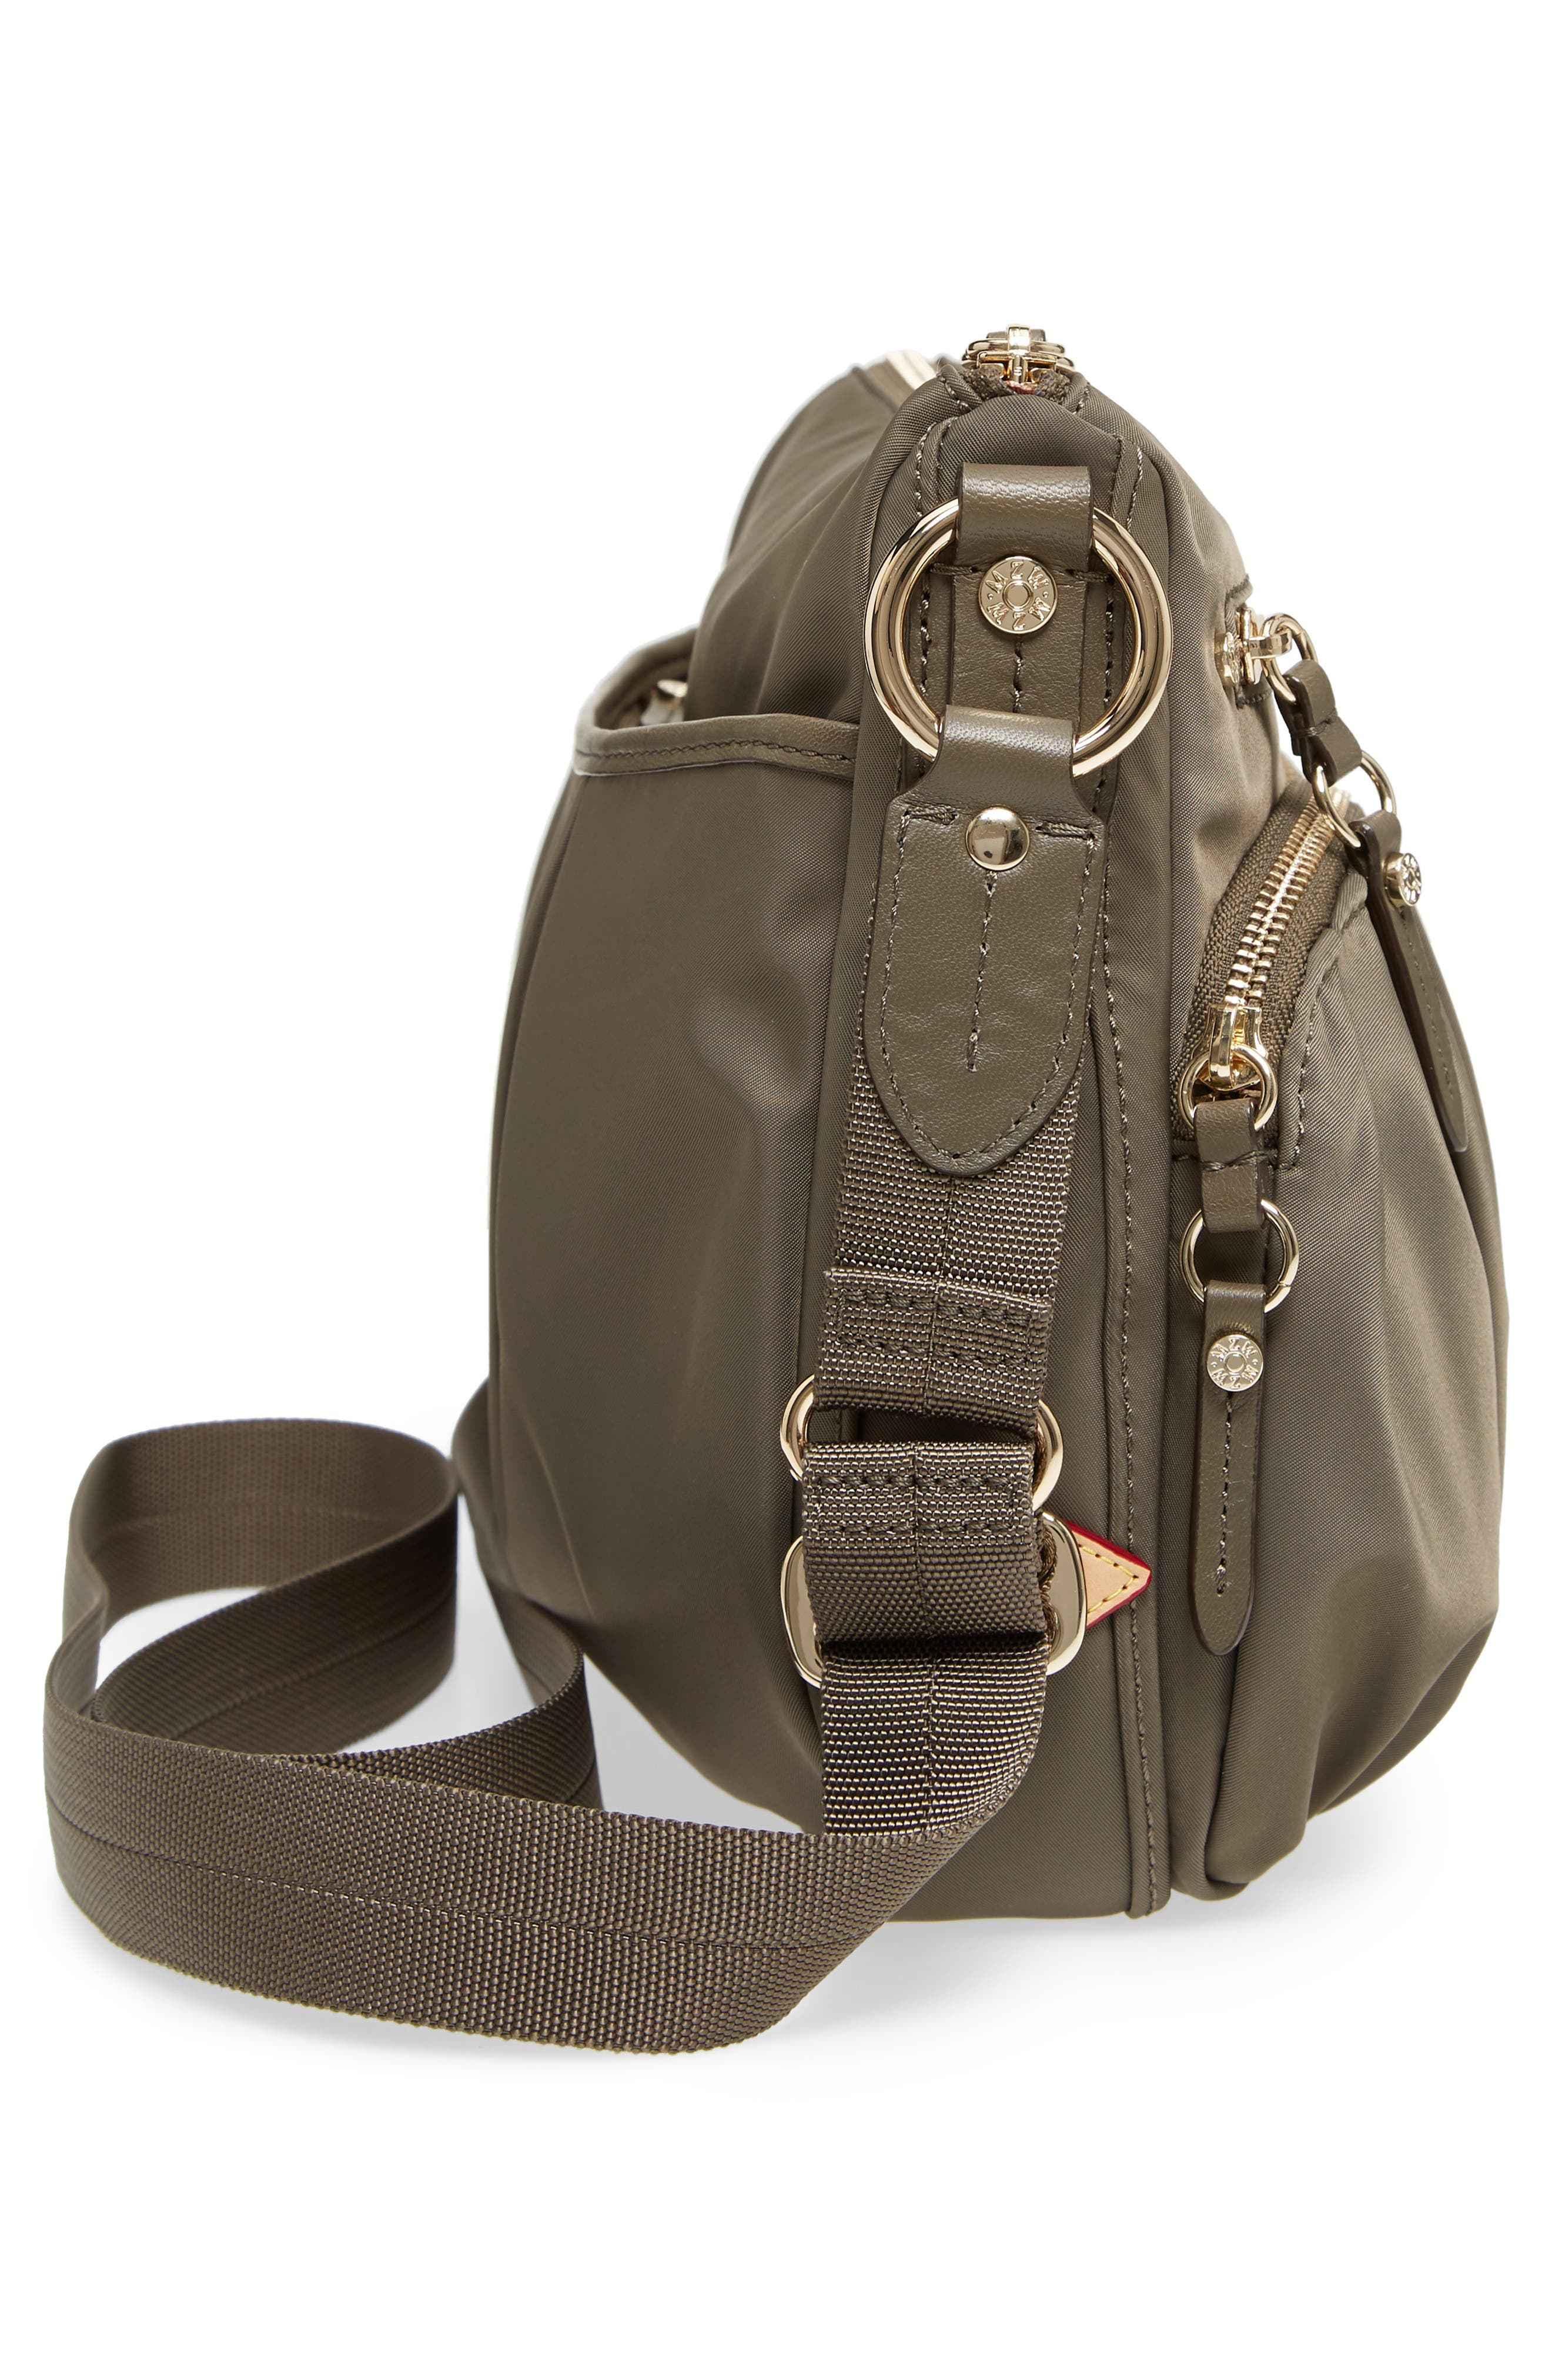 Paige Crossbody Bag,                             Alternate thumbnail 5, color,                             Clay